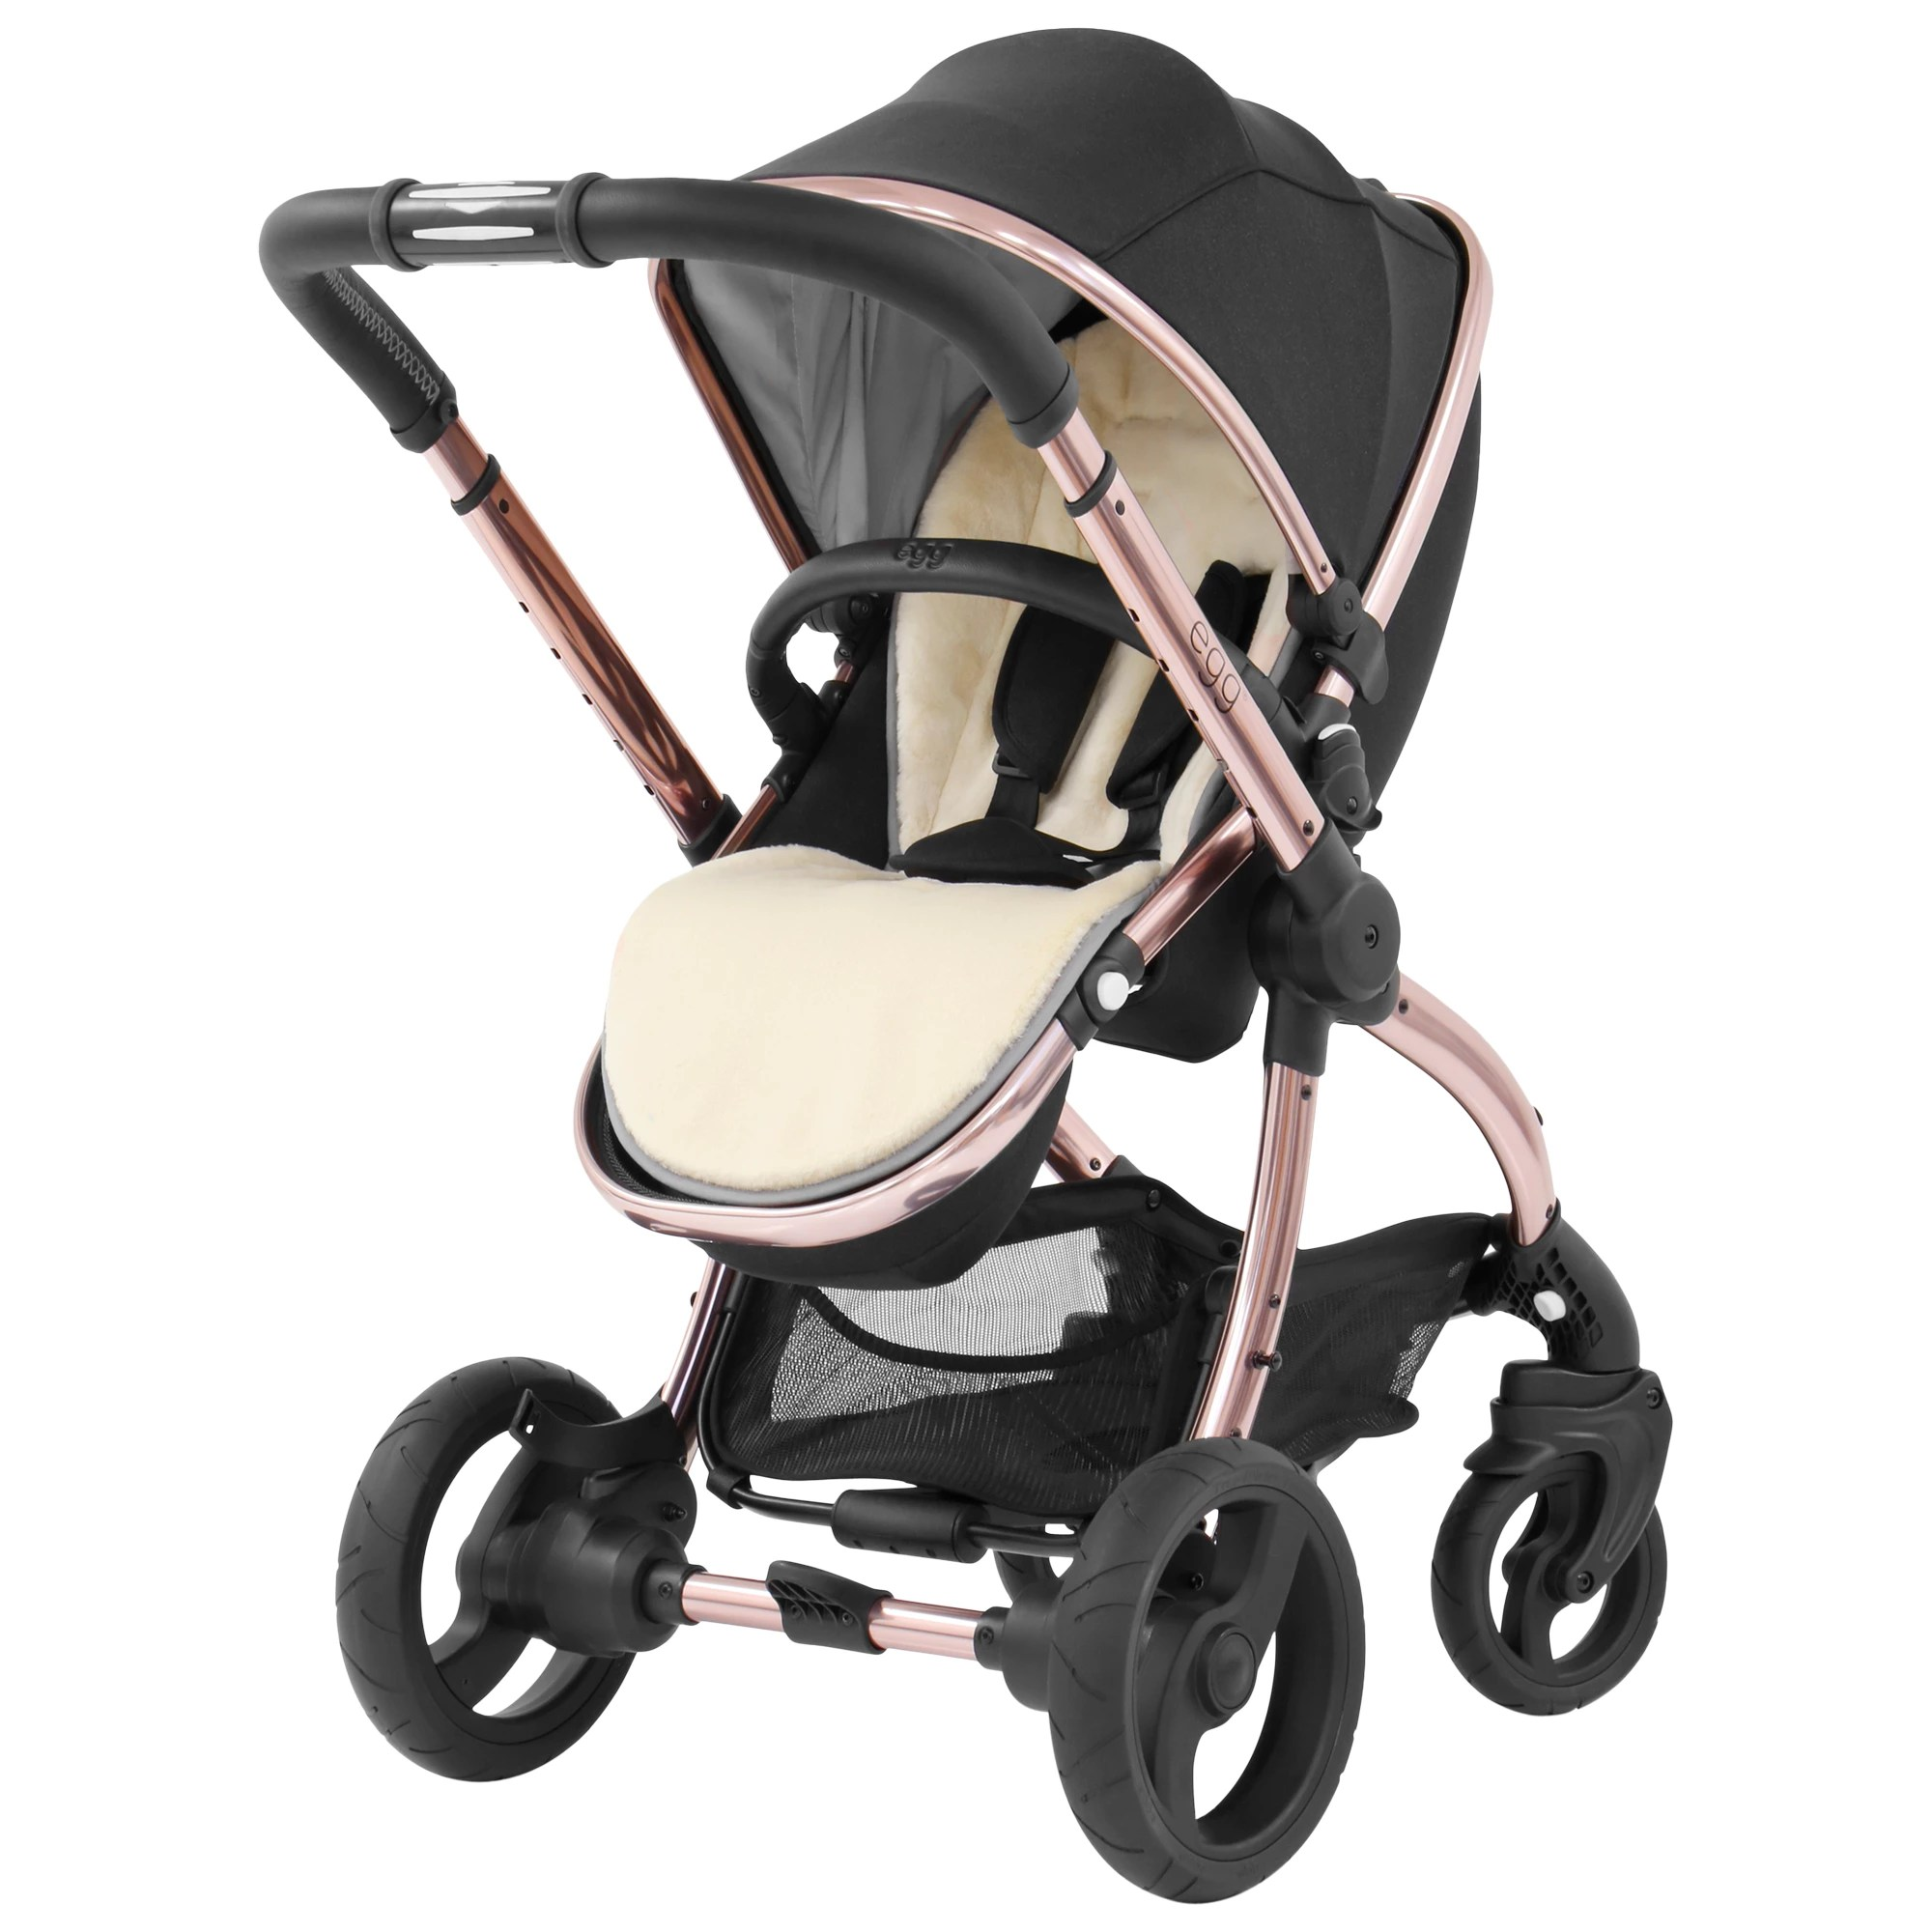 Egg Stroller For Twins Egg Stroller Base And Seat With Fleece Liner Black Diamond